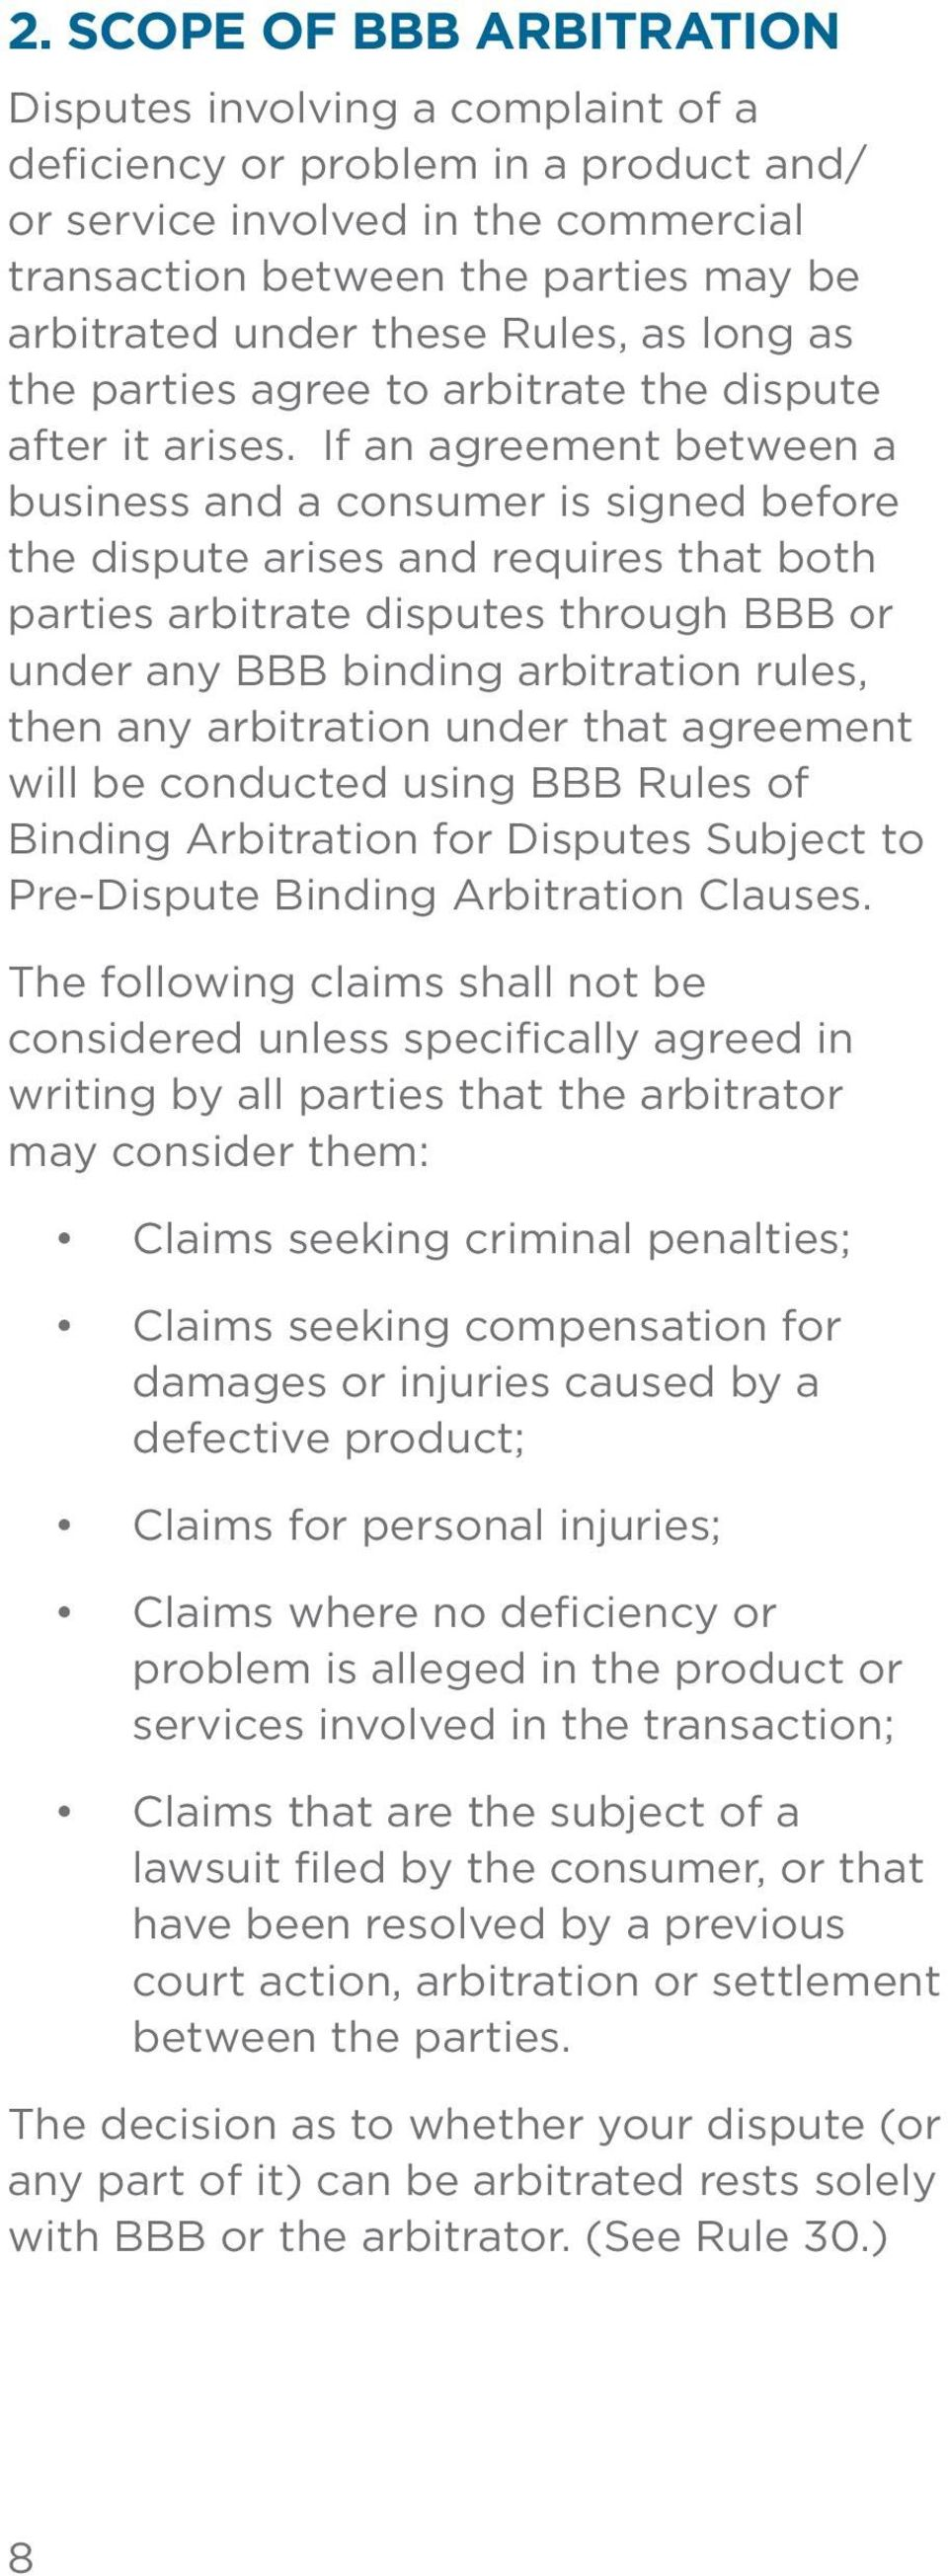 If an agreement between a business and a consumer is signed before the dispute arises and requires that both parties arbitrate disputes through BBB or under any BBB binding arbitration rules, then